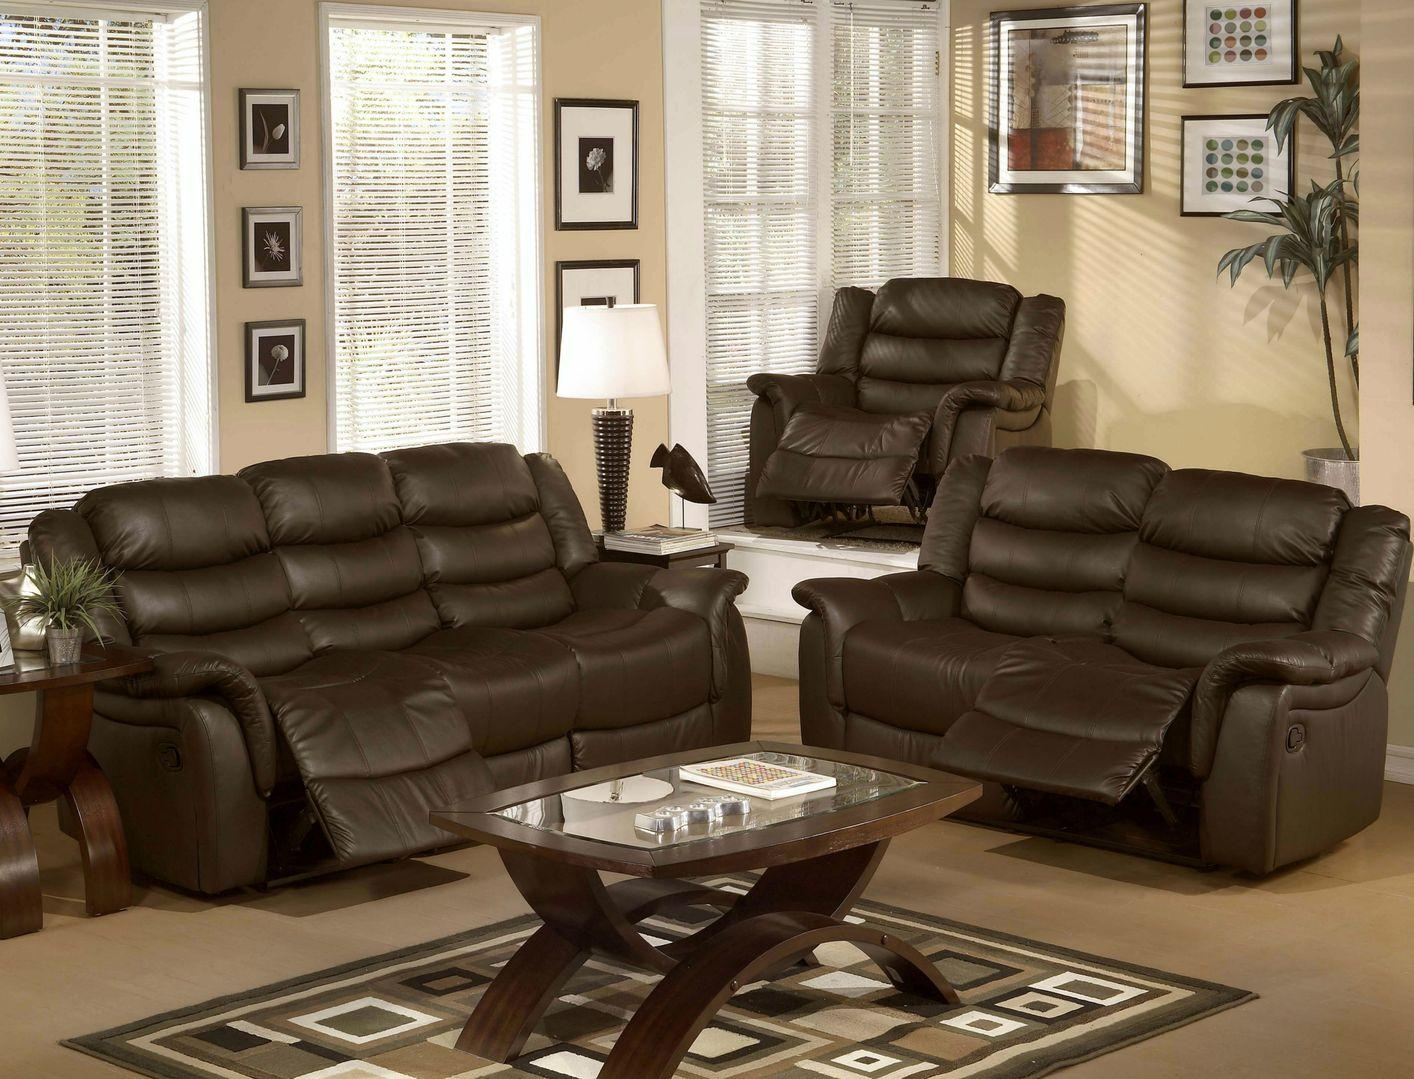 Some Types Sofa And Chair Set — Home Ideas Collection Within Sofa And Chair Set (Image 19 of 20)